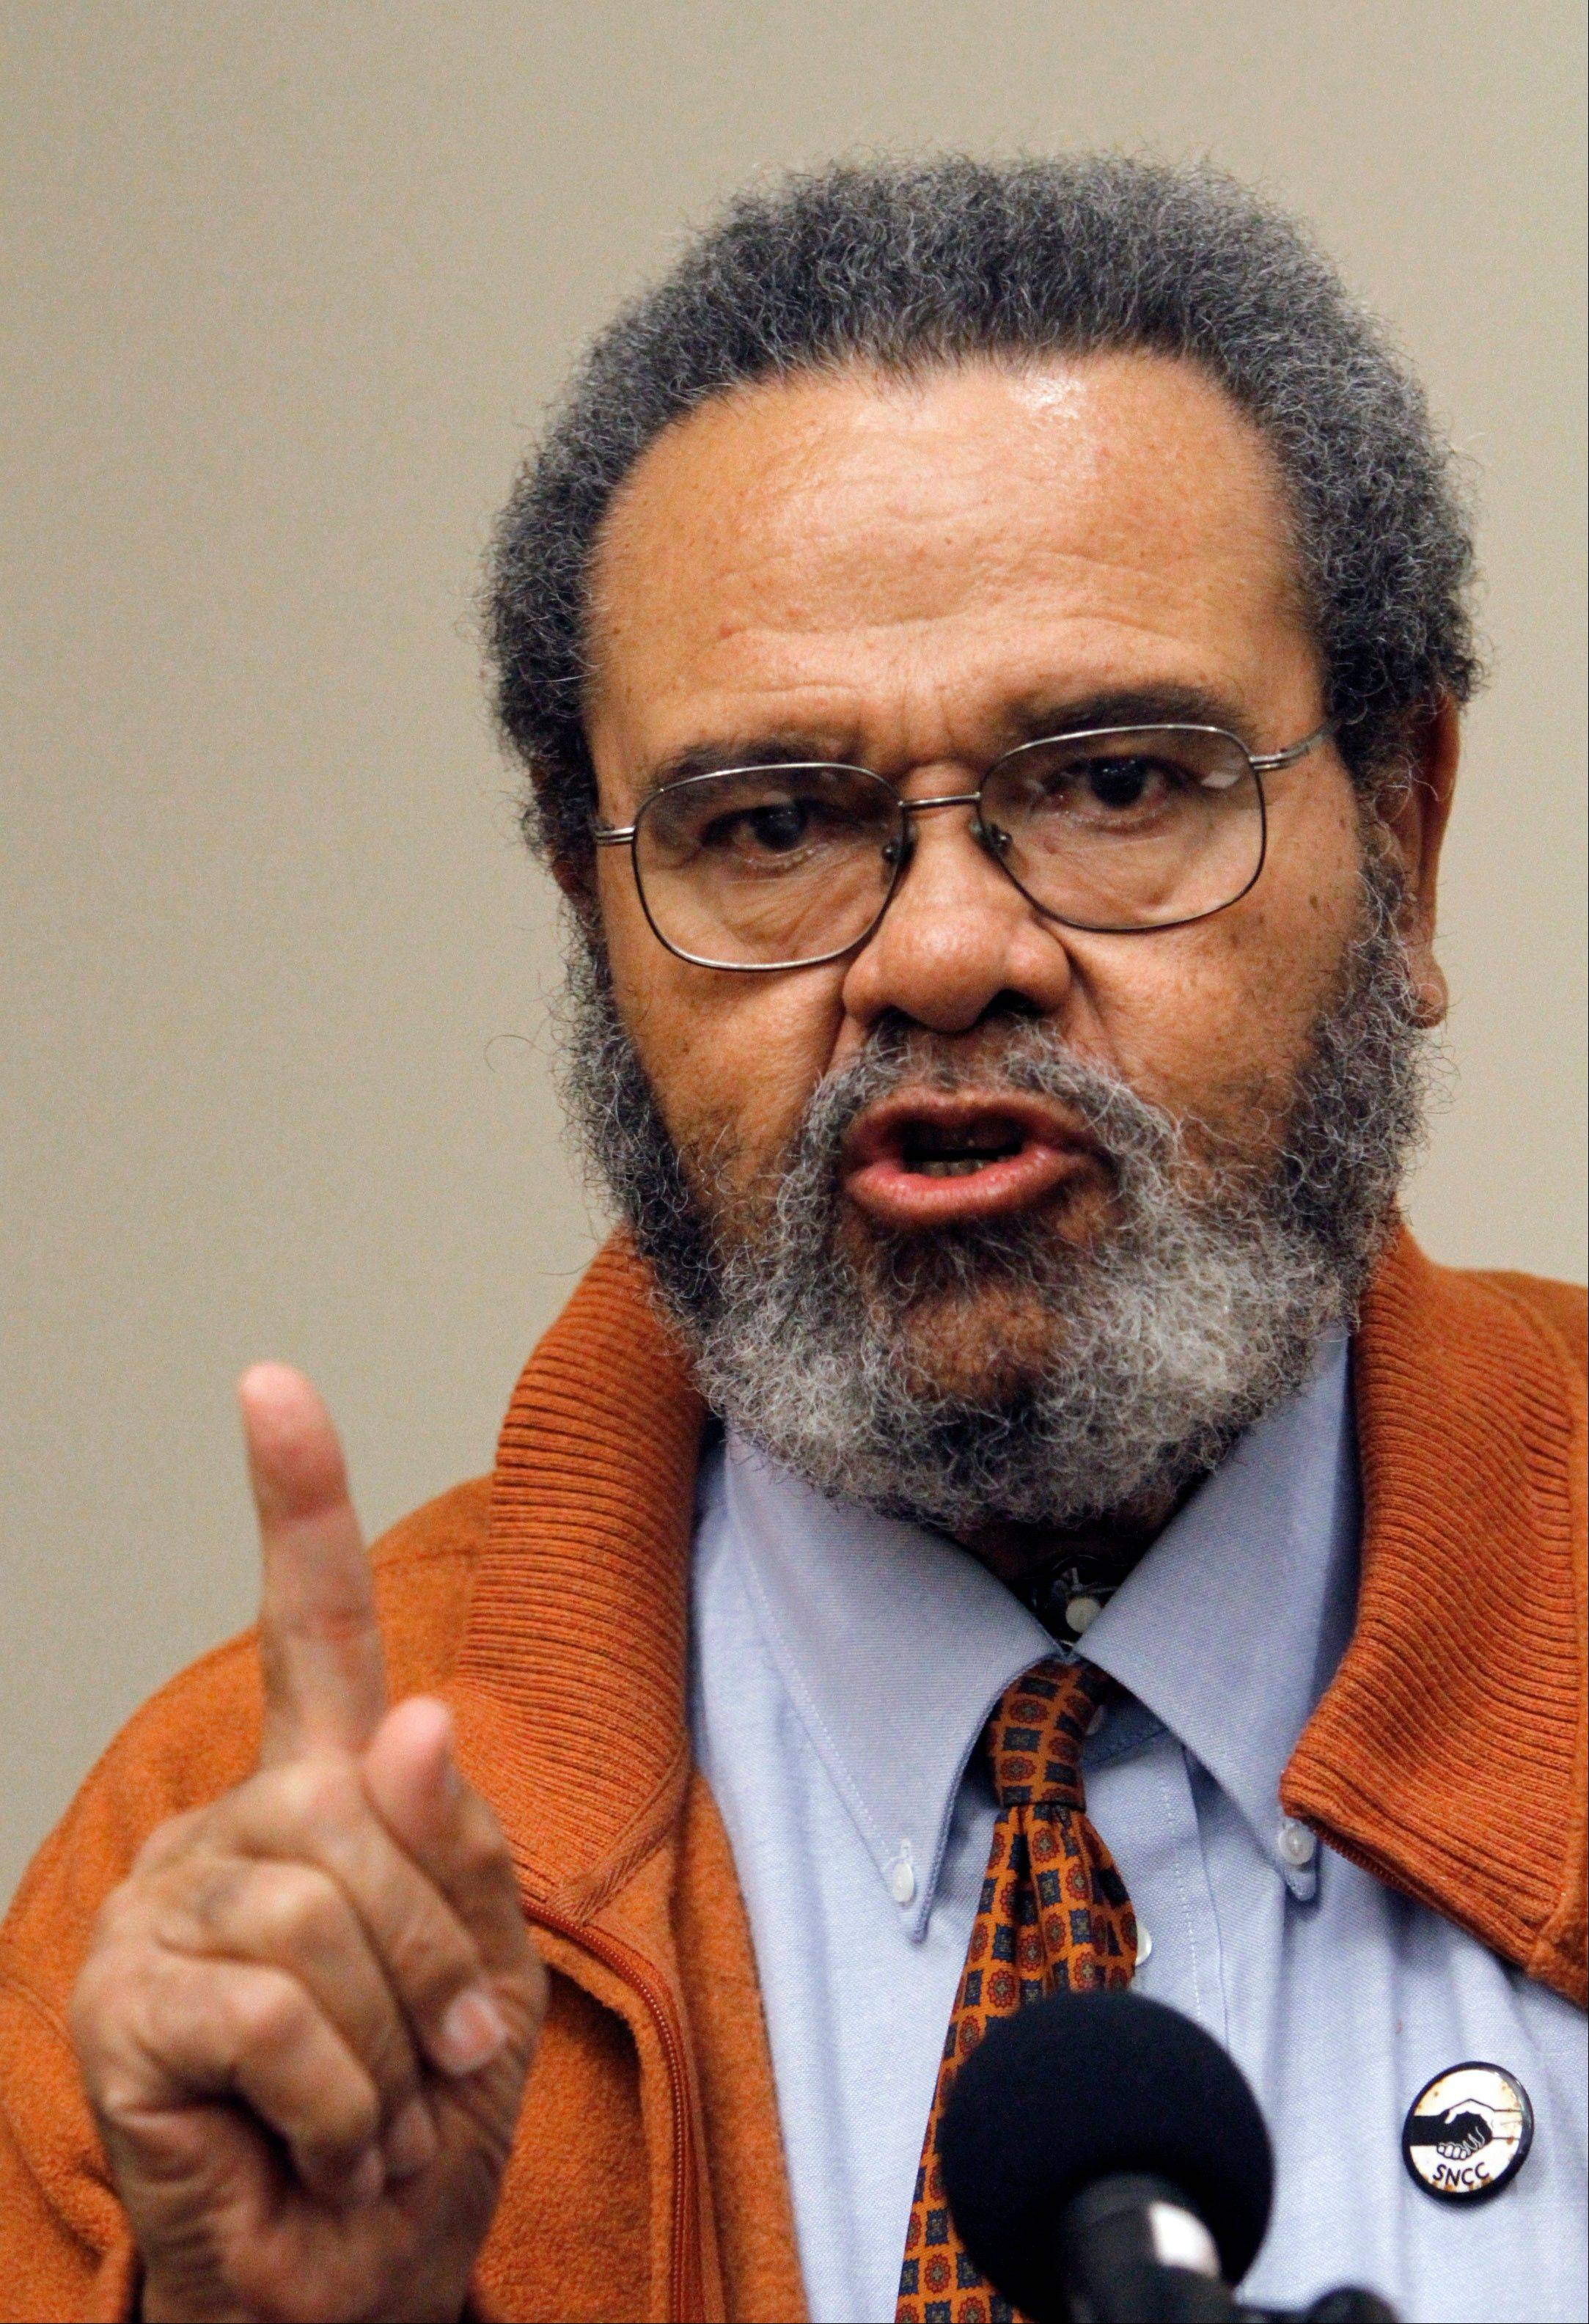 Civil rights leader Lawrence Guyot died late Thursday or early Friday outside Washington, D.C., at the age of 73.